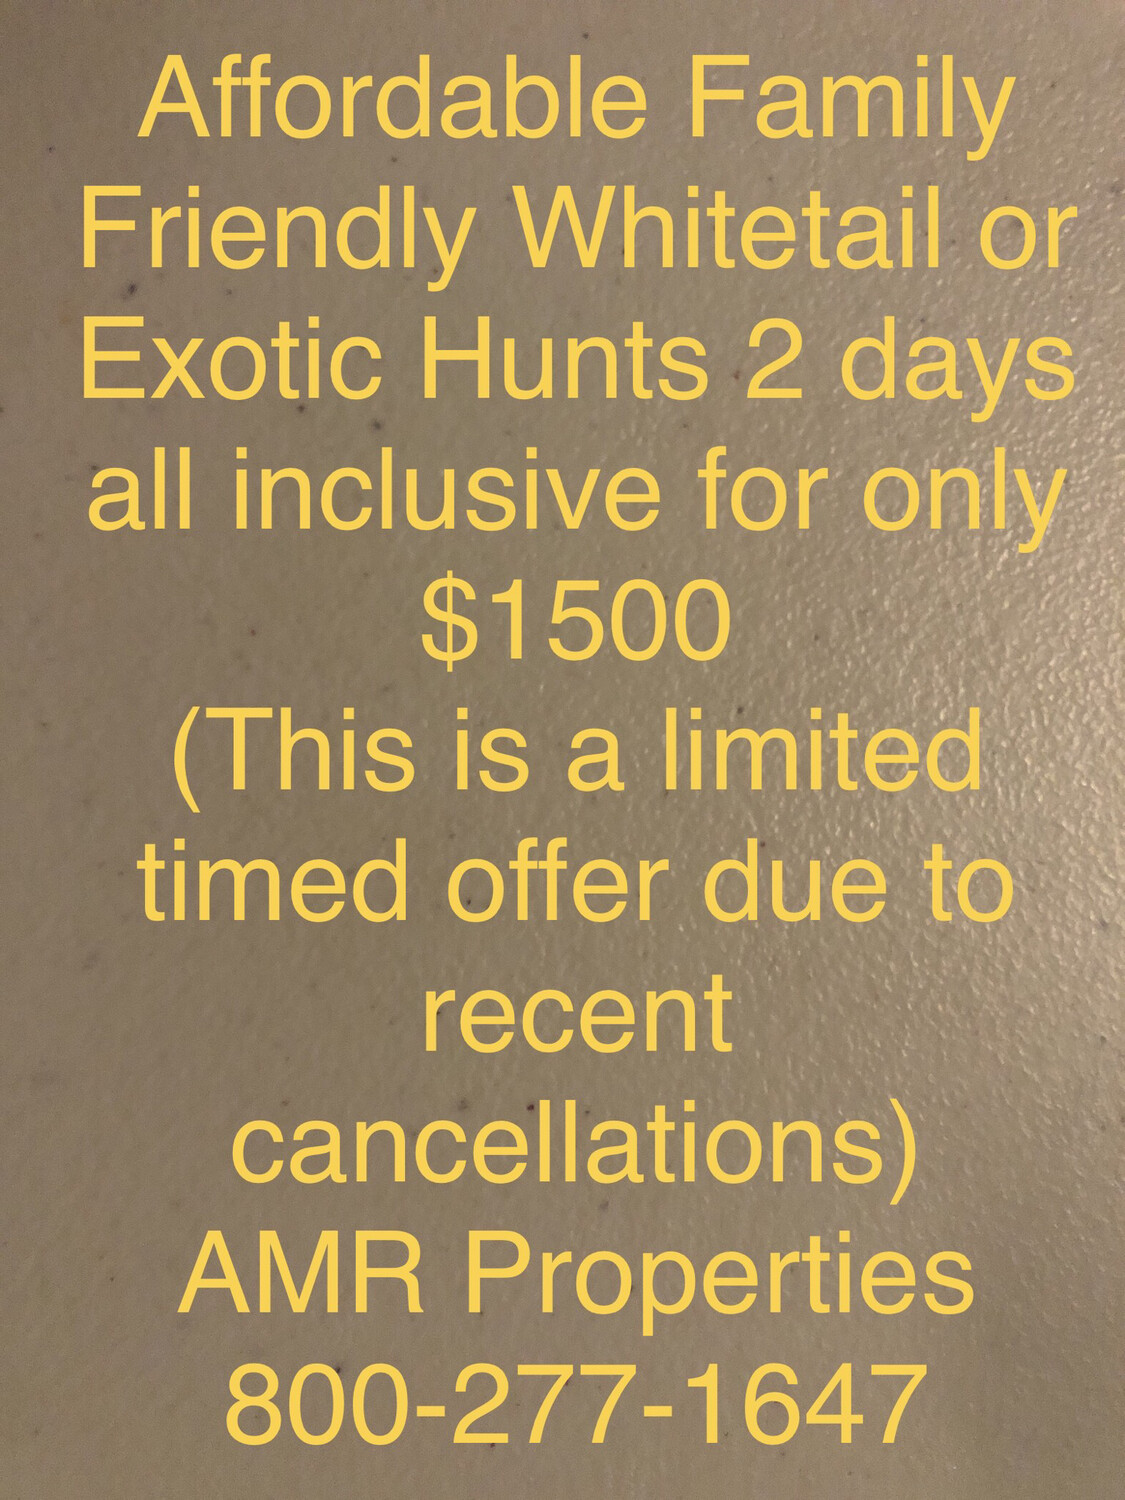 Affordable, Family Friendly - Management Whitetail or Exotic Hunt in the Texas Hill Country - 2 day 2 night all inclusive For Only